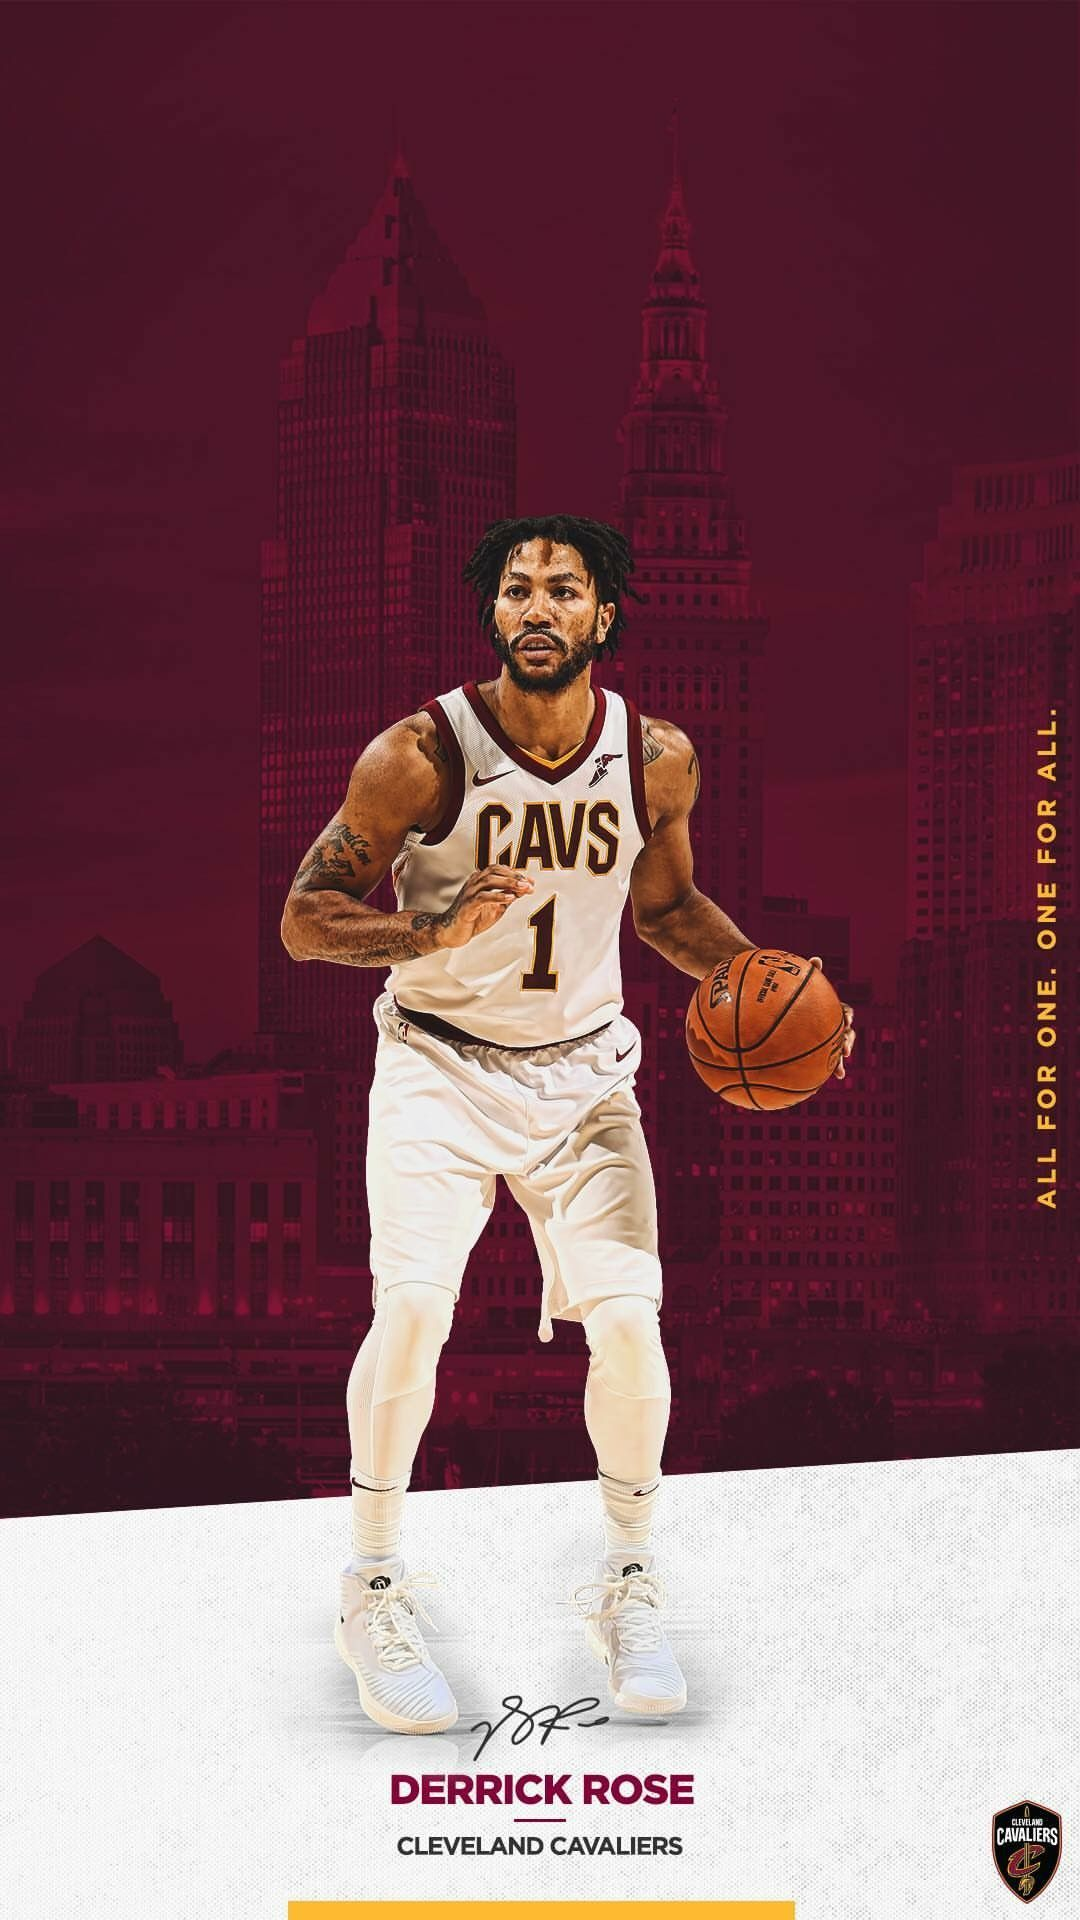 Derrick Rose Wallpaper 2018